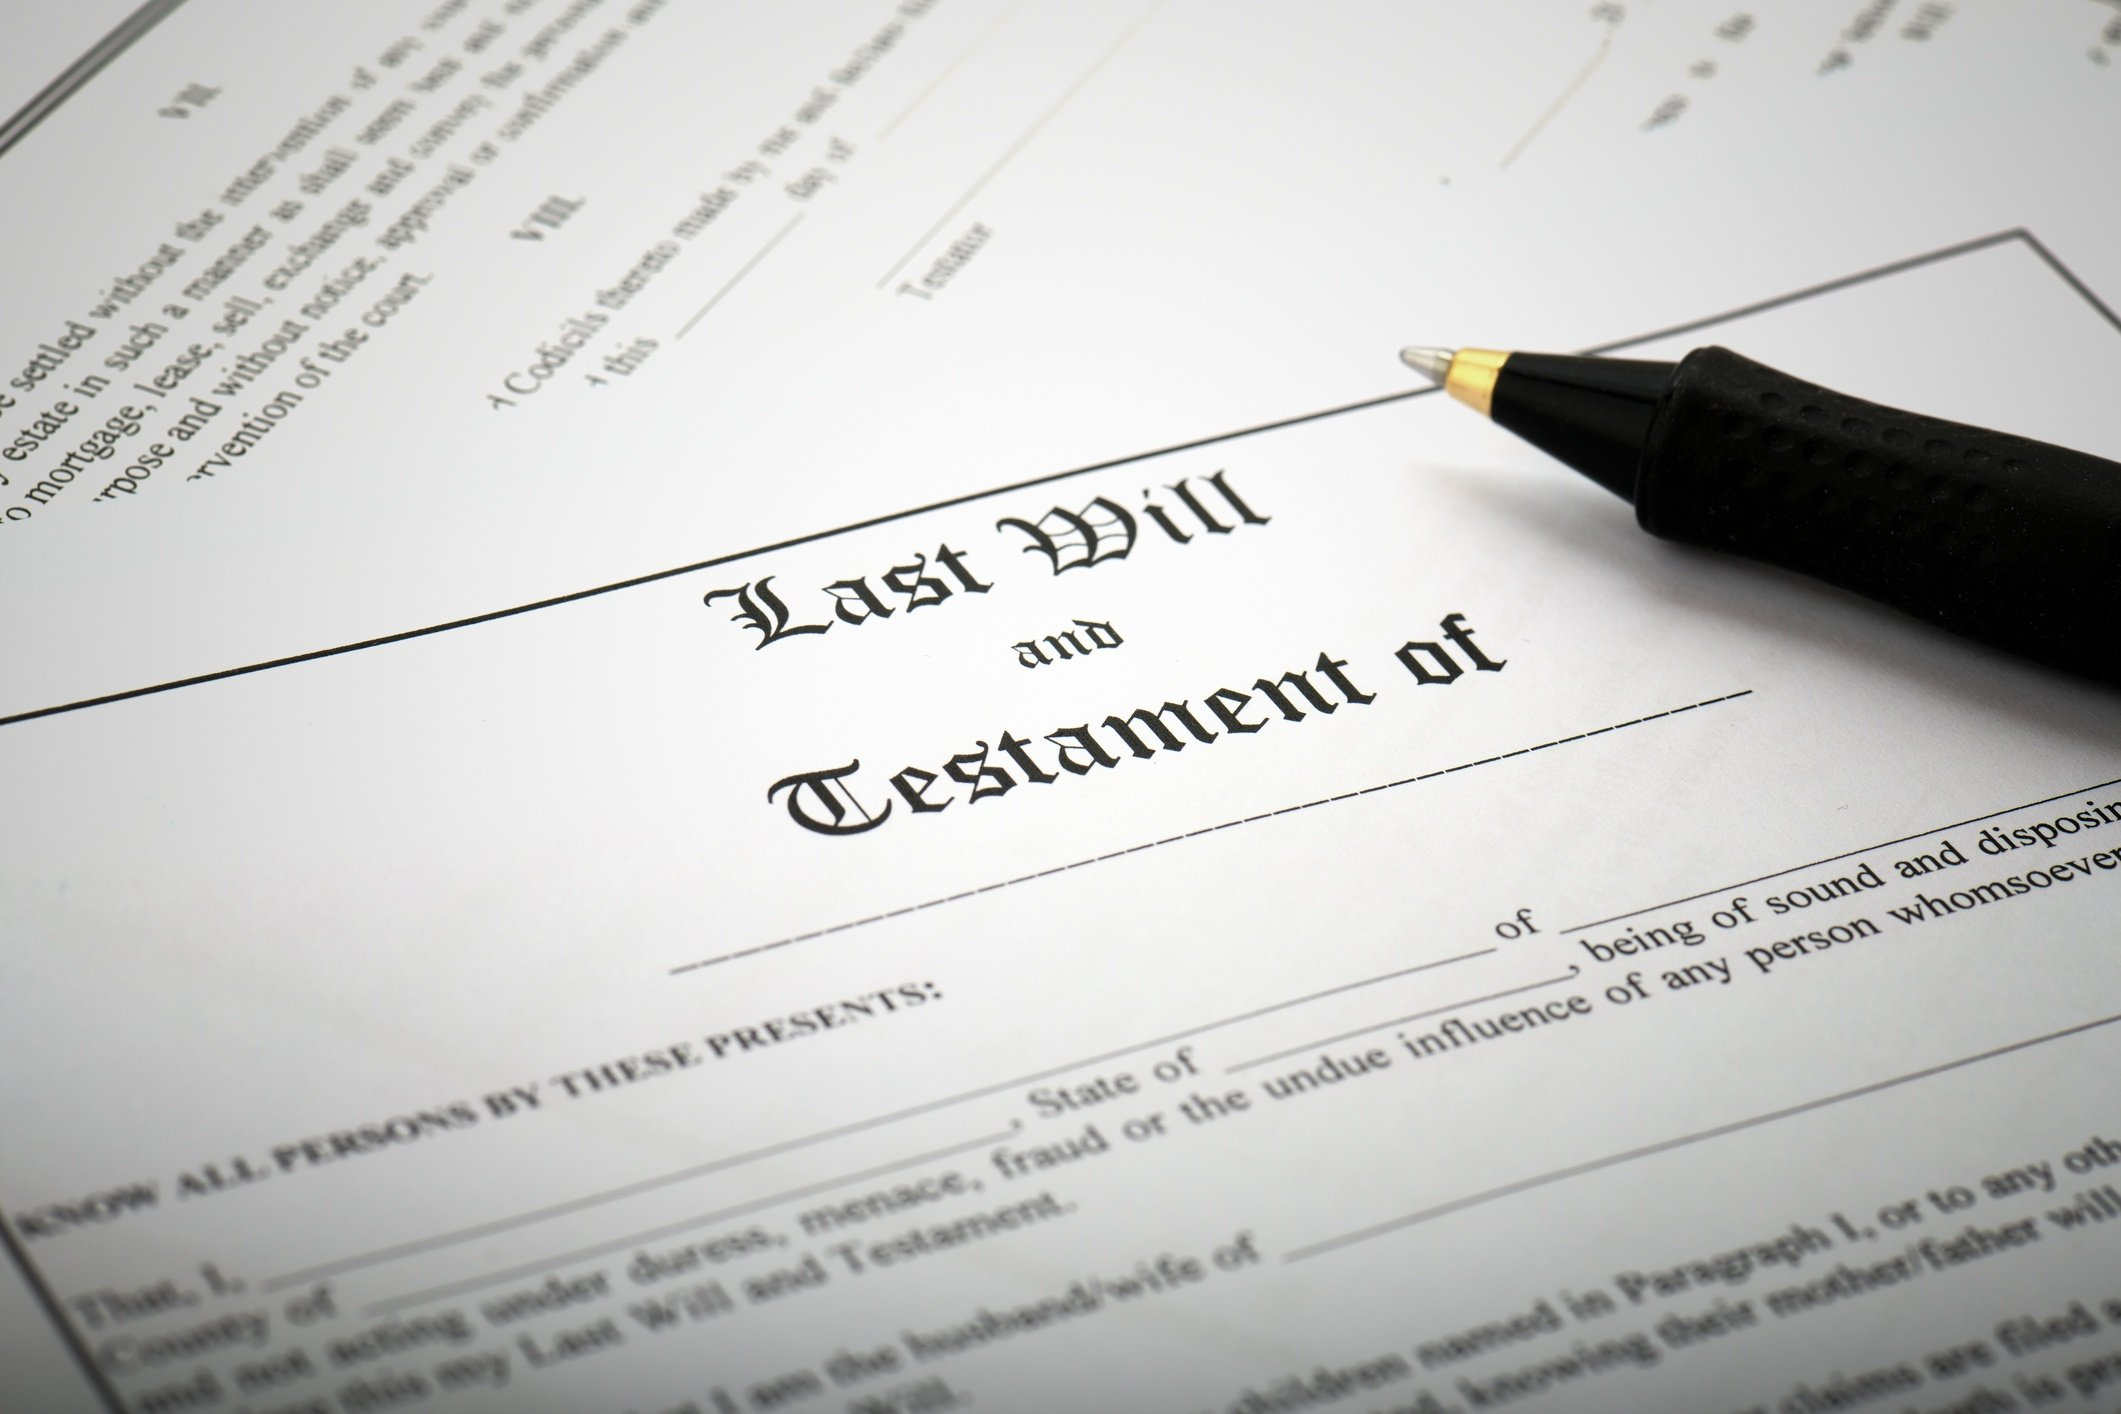 Last will and testament document with pen resting on top